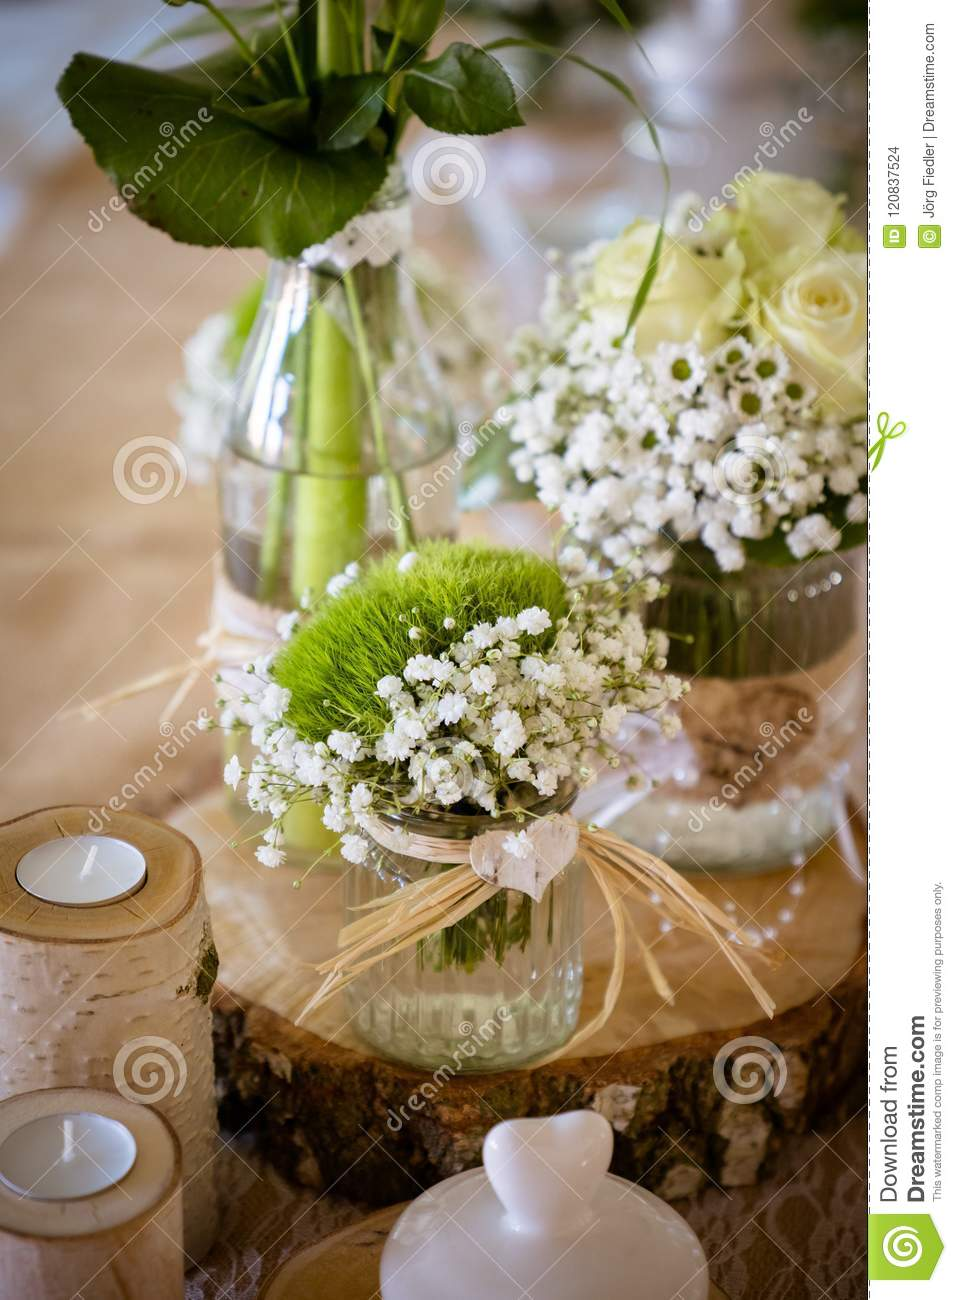 Wedding Decorations For Table In Rustic Style Wooden Desk Stock